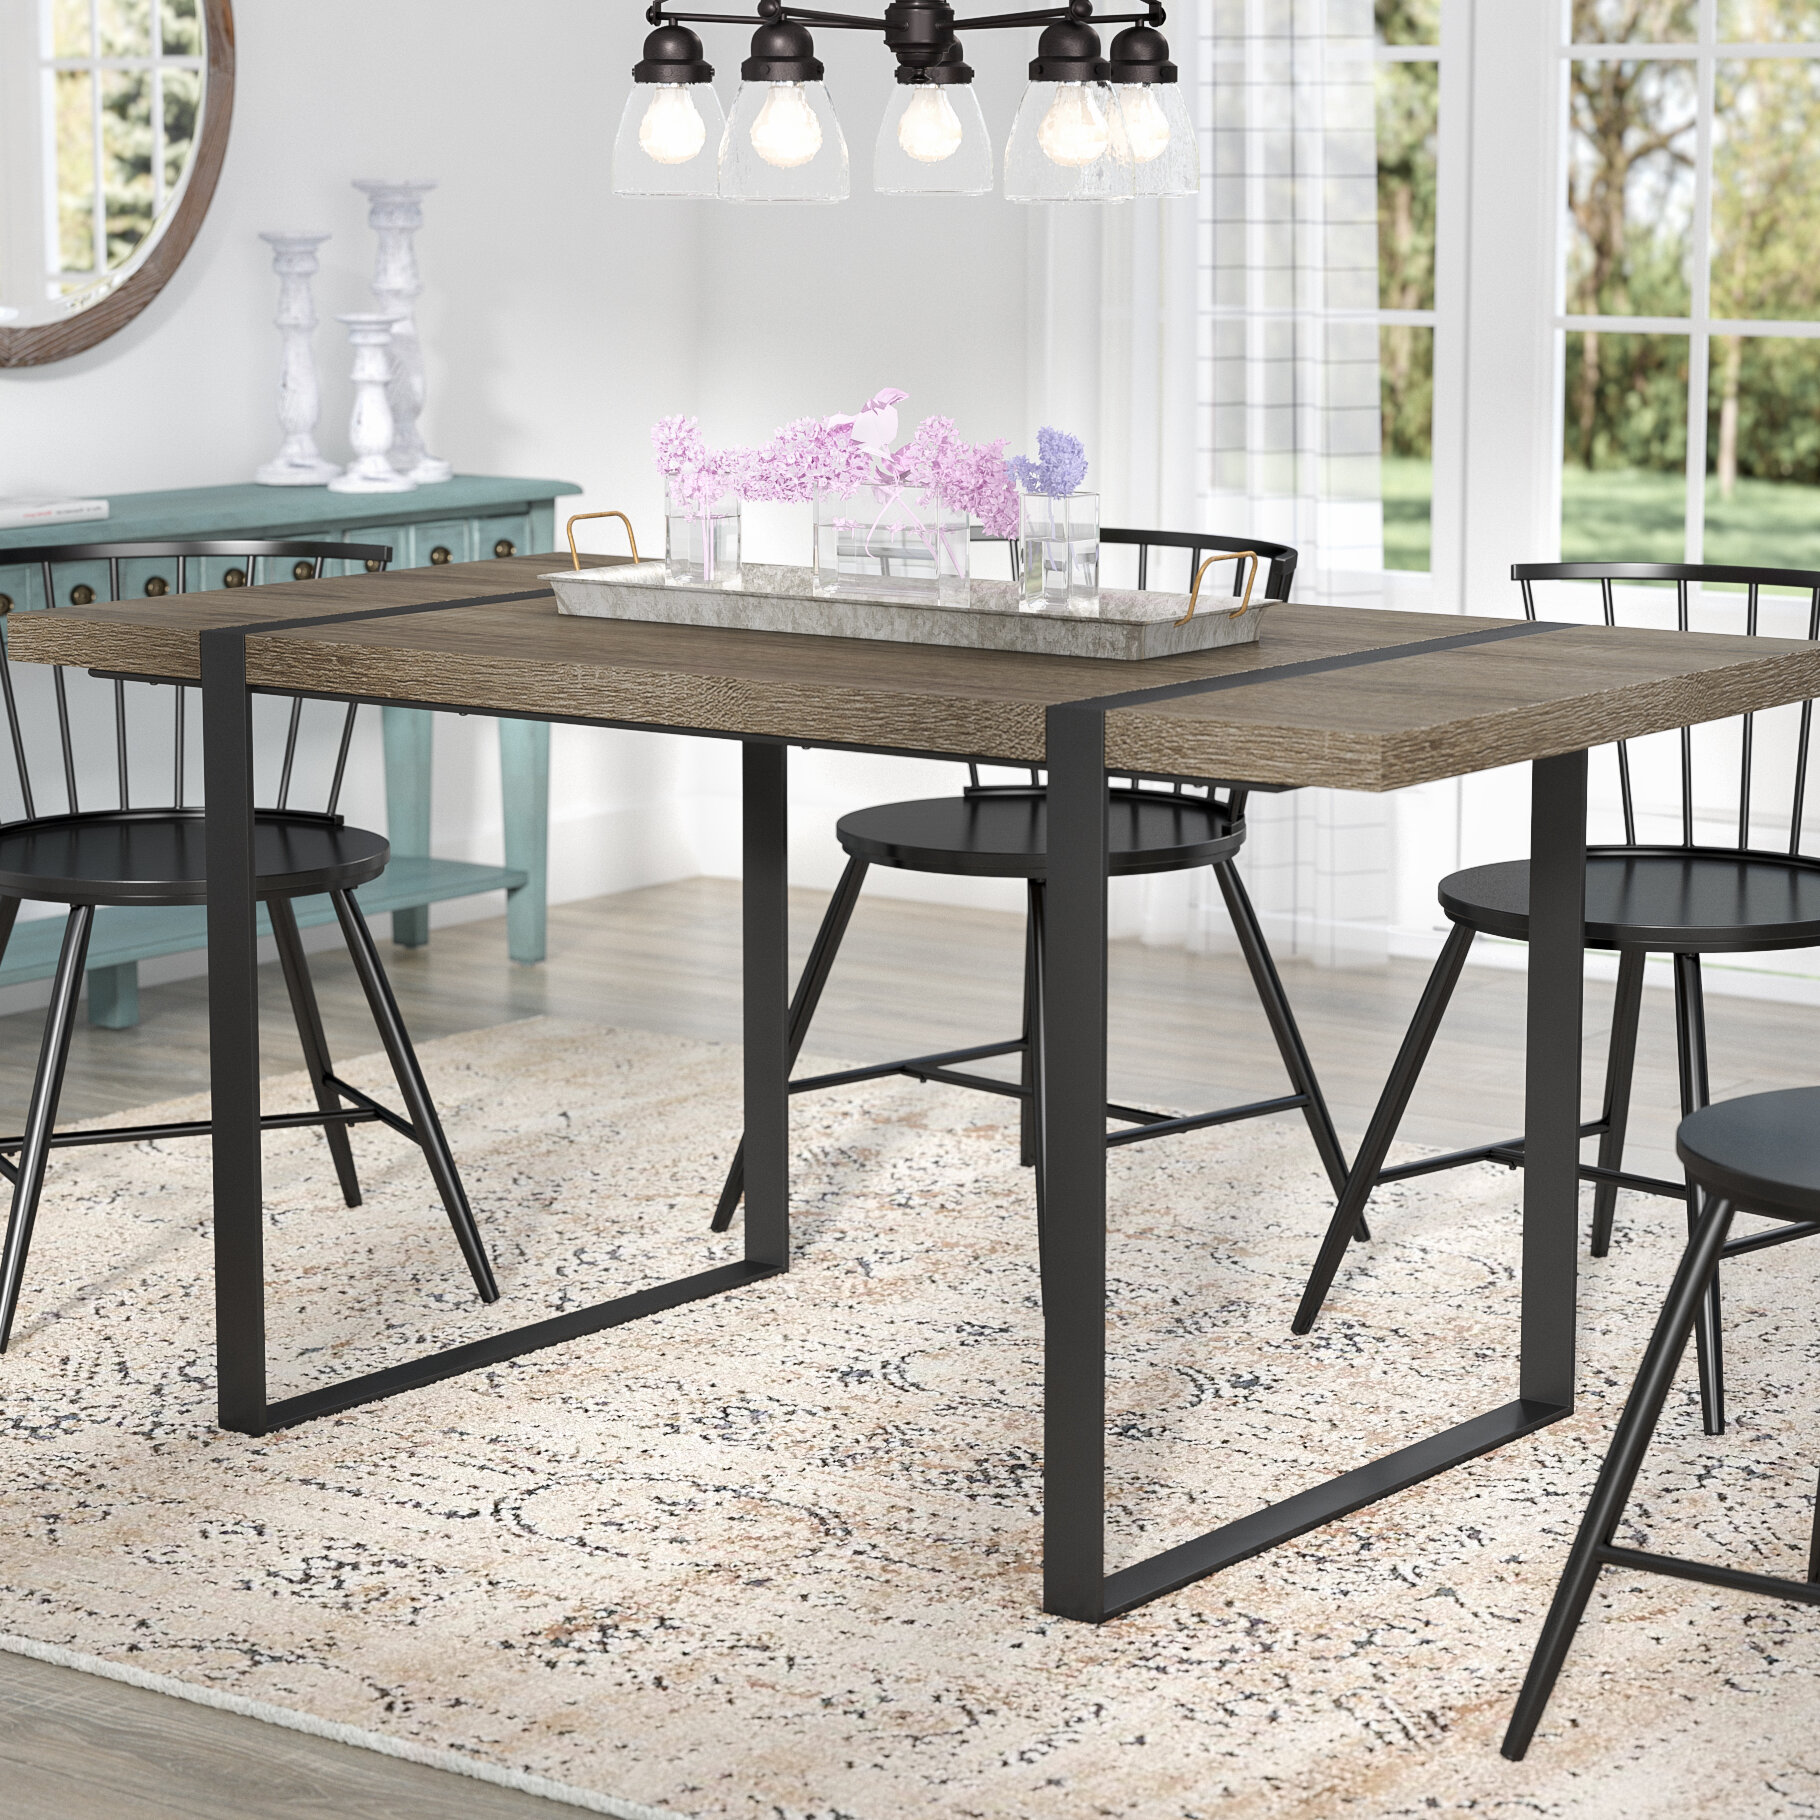 Laurel Foundry Modern Farmhouse Madelyn Urban Blend Wood Dining Table Wayfair